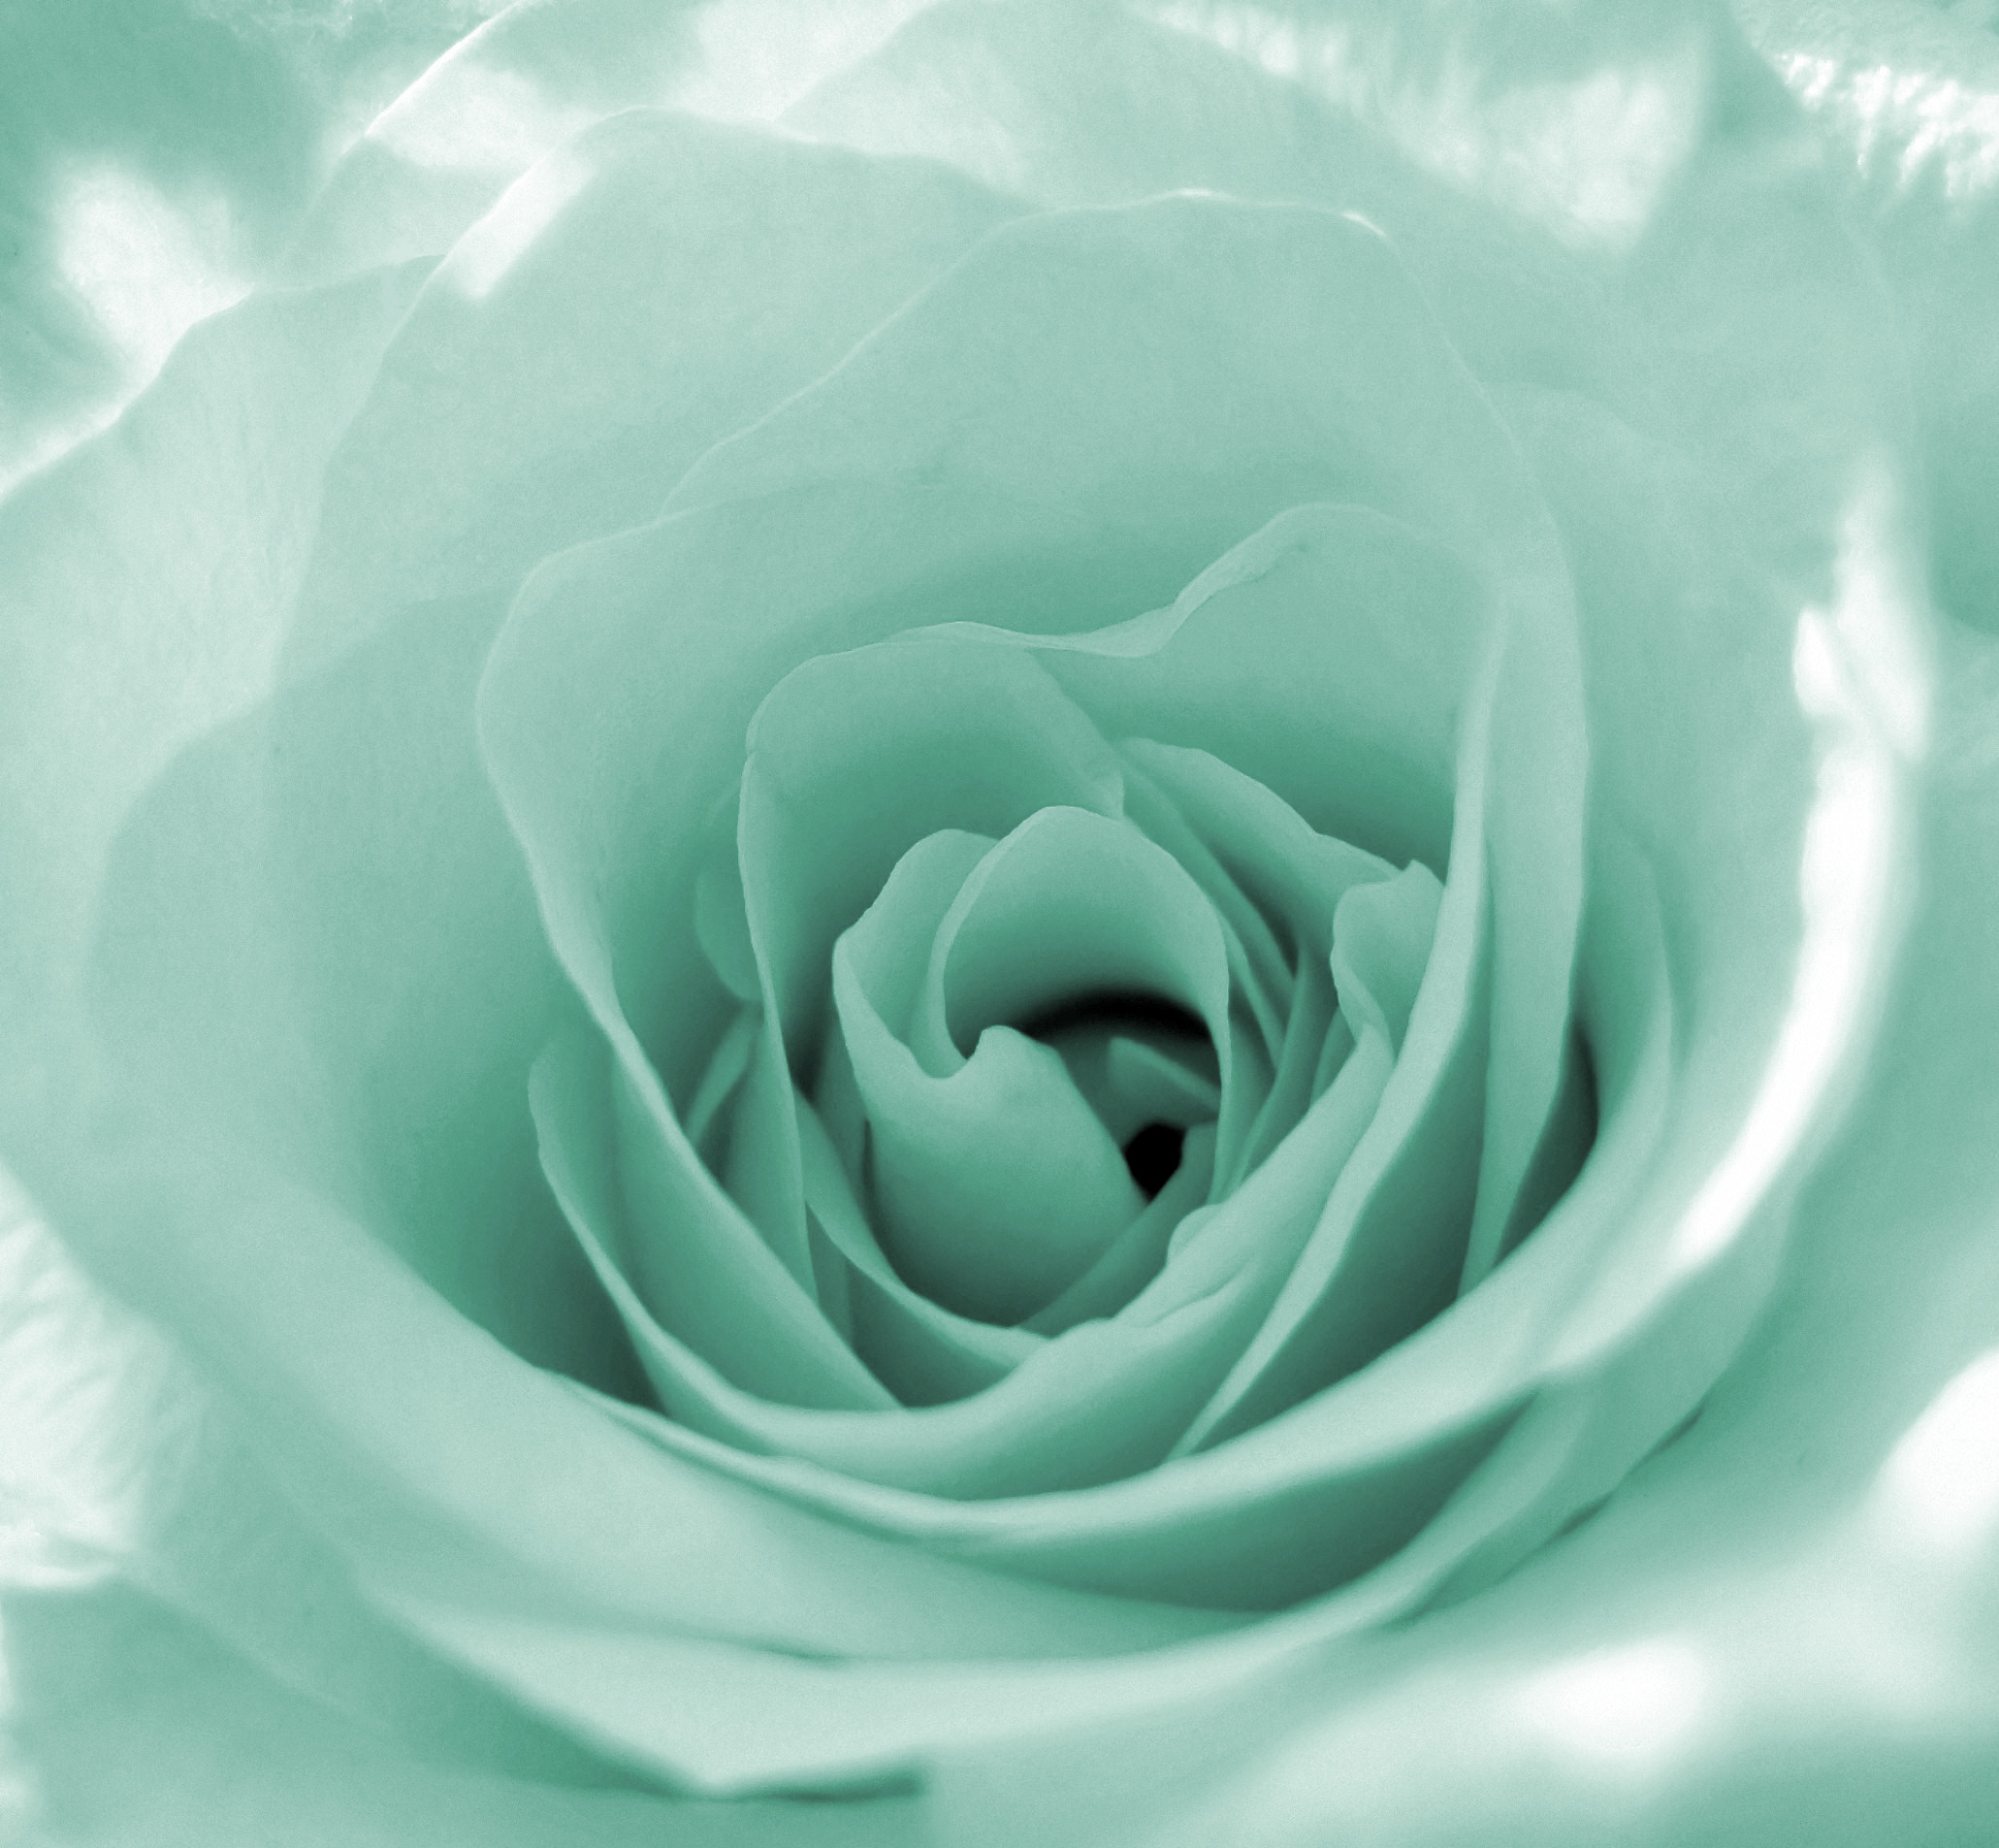 Fun with st patrick 39 s day flowers flower pressflower press for Green colour rose images